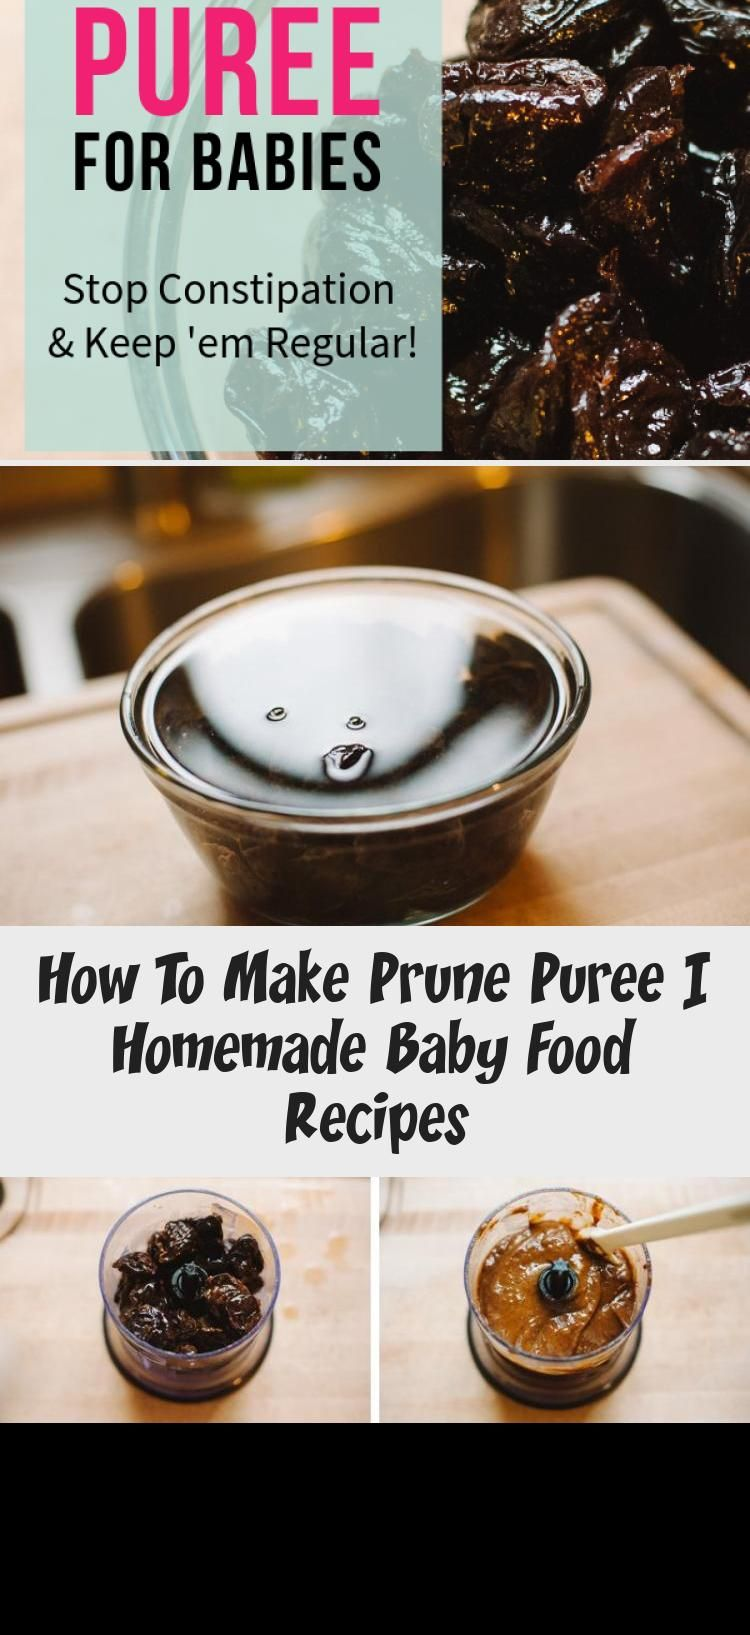 How To Make Prune Puree in 2020 Baby food recipes